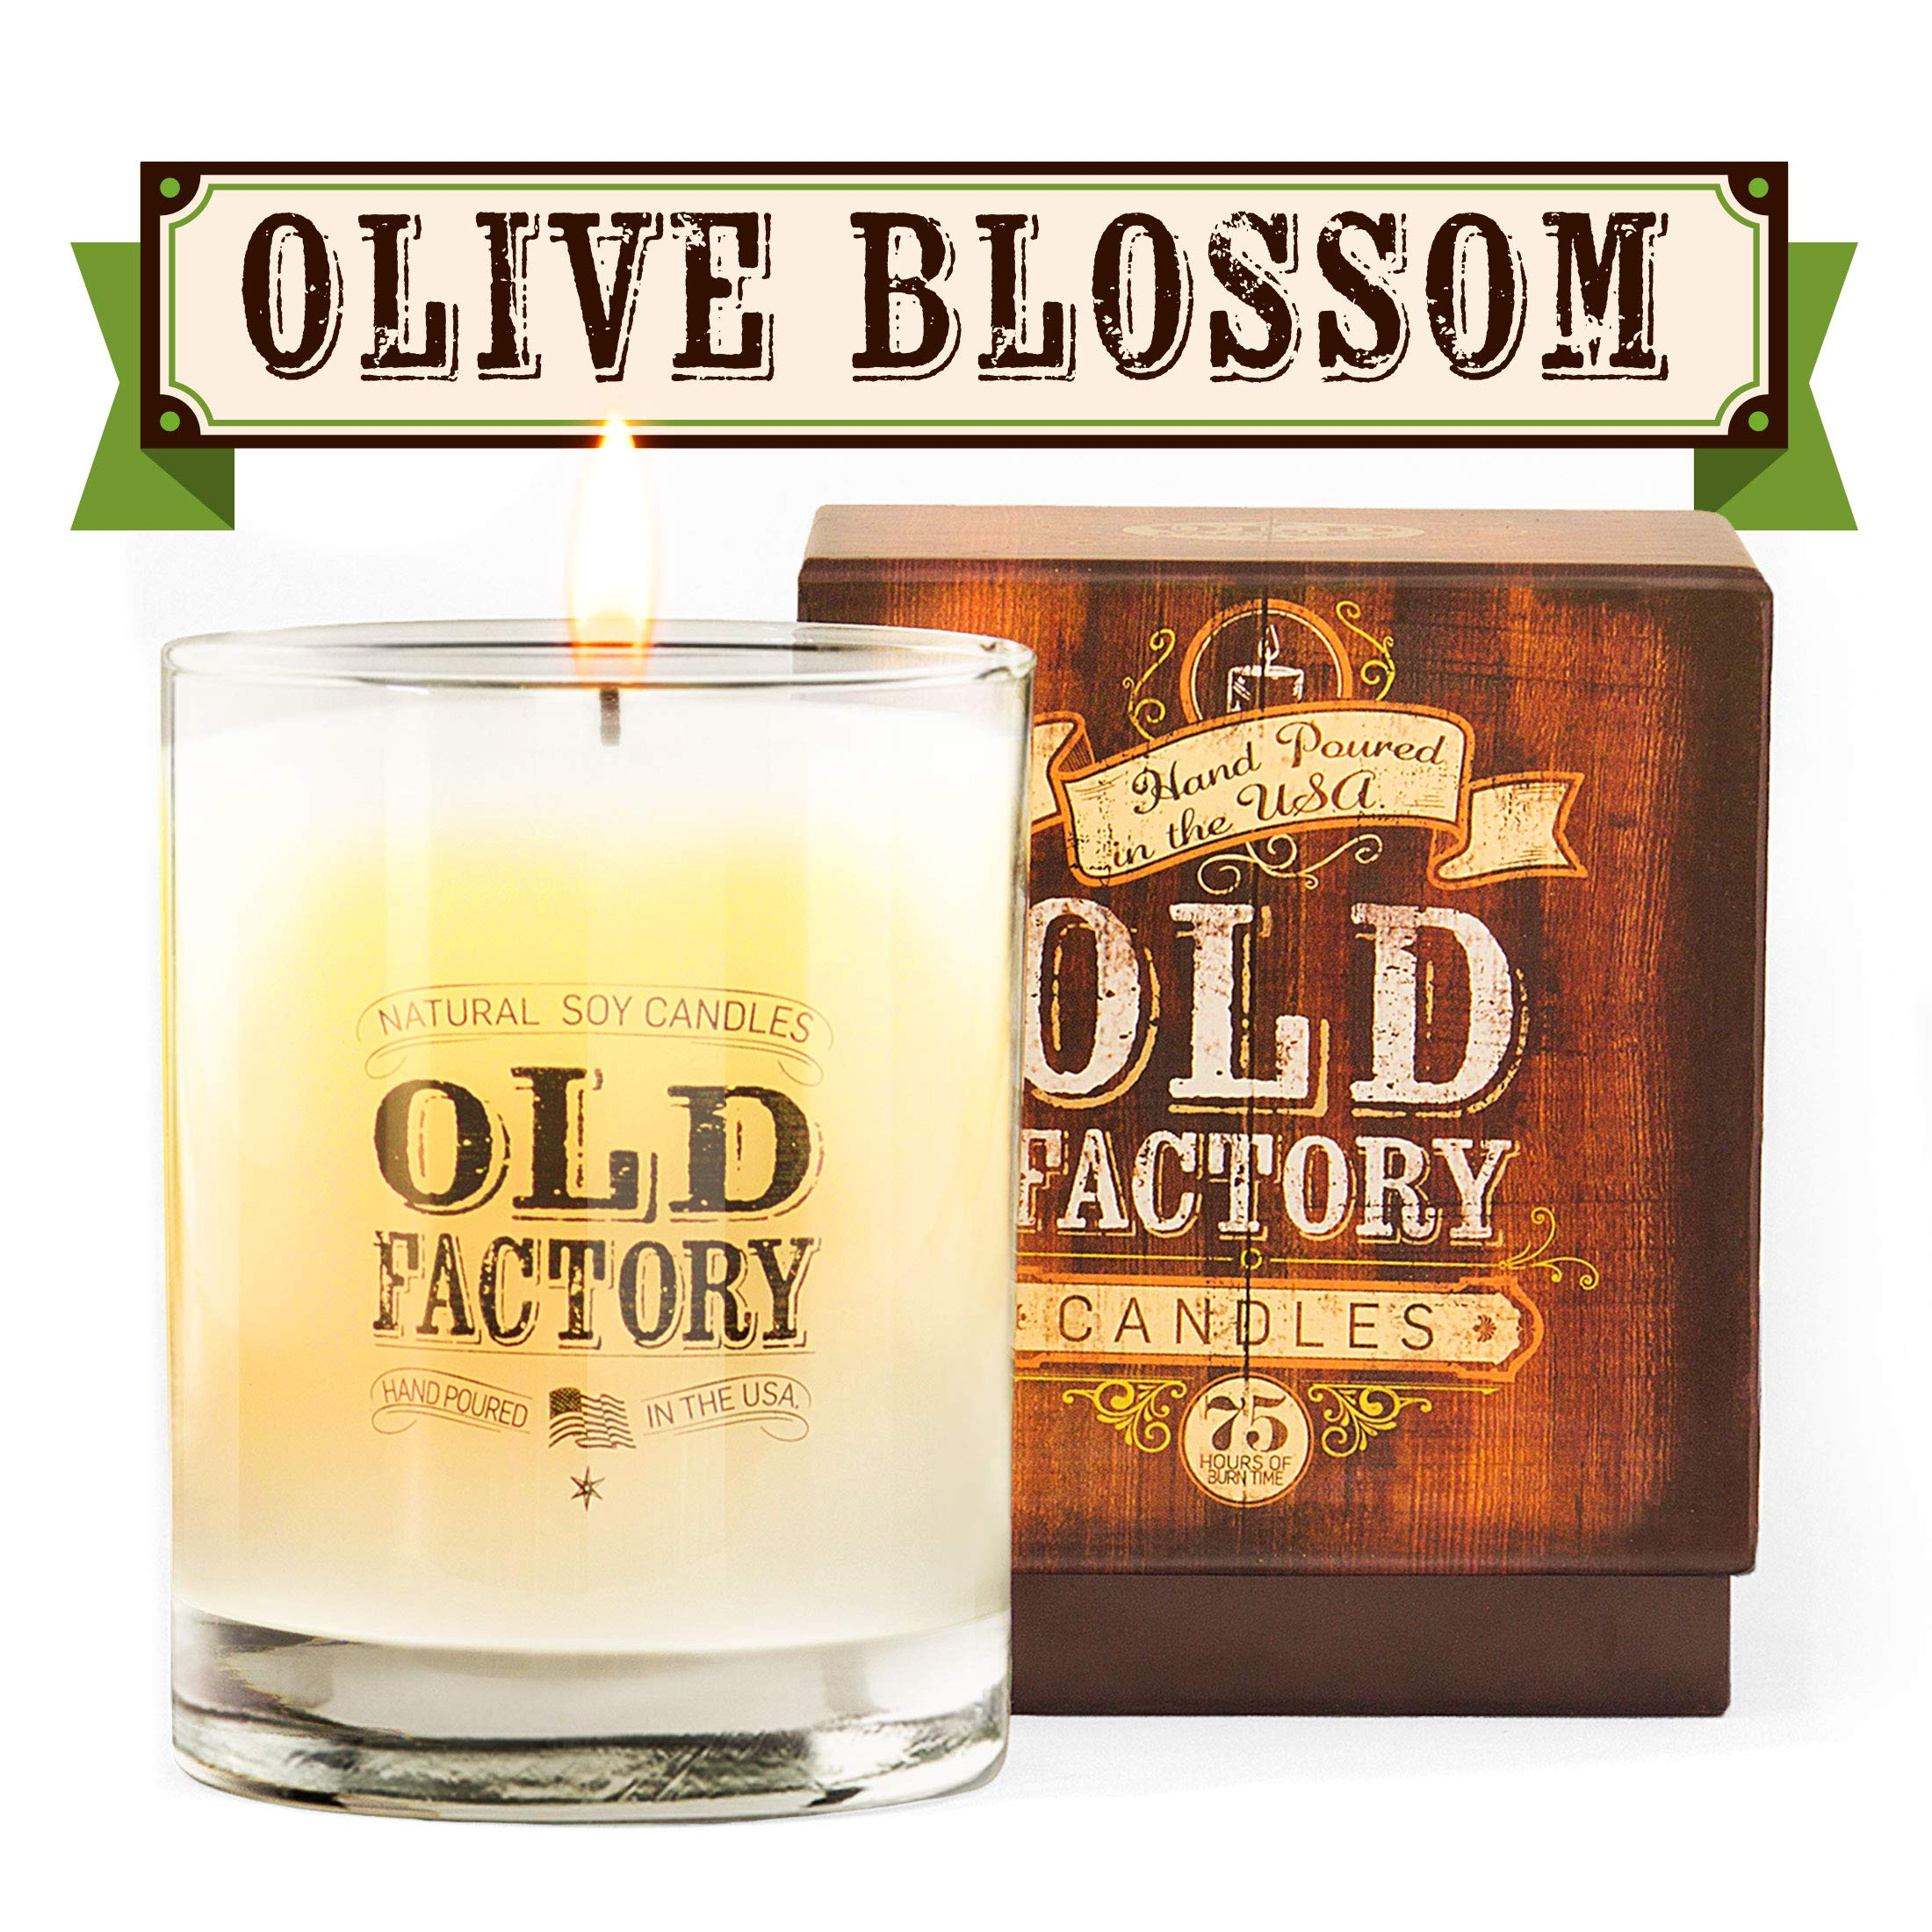 Old Factory Scented Candles - 11-Ounce Soy Candle - Top (Olive Blossom)